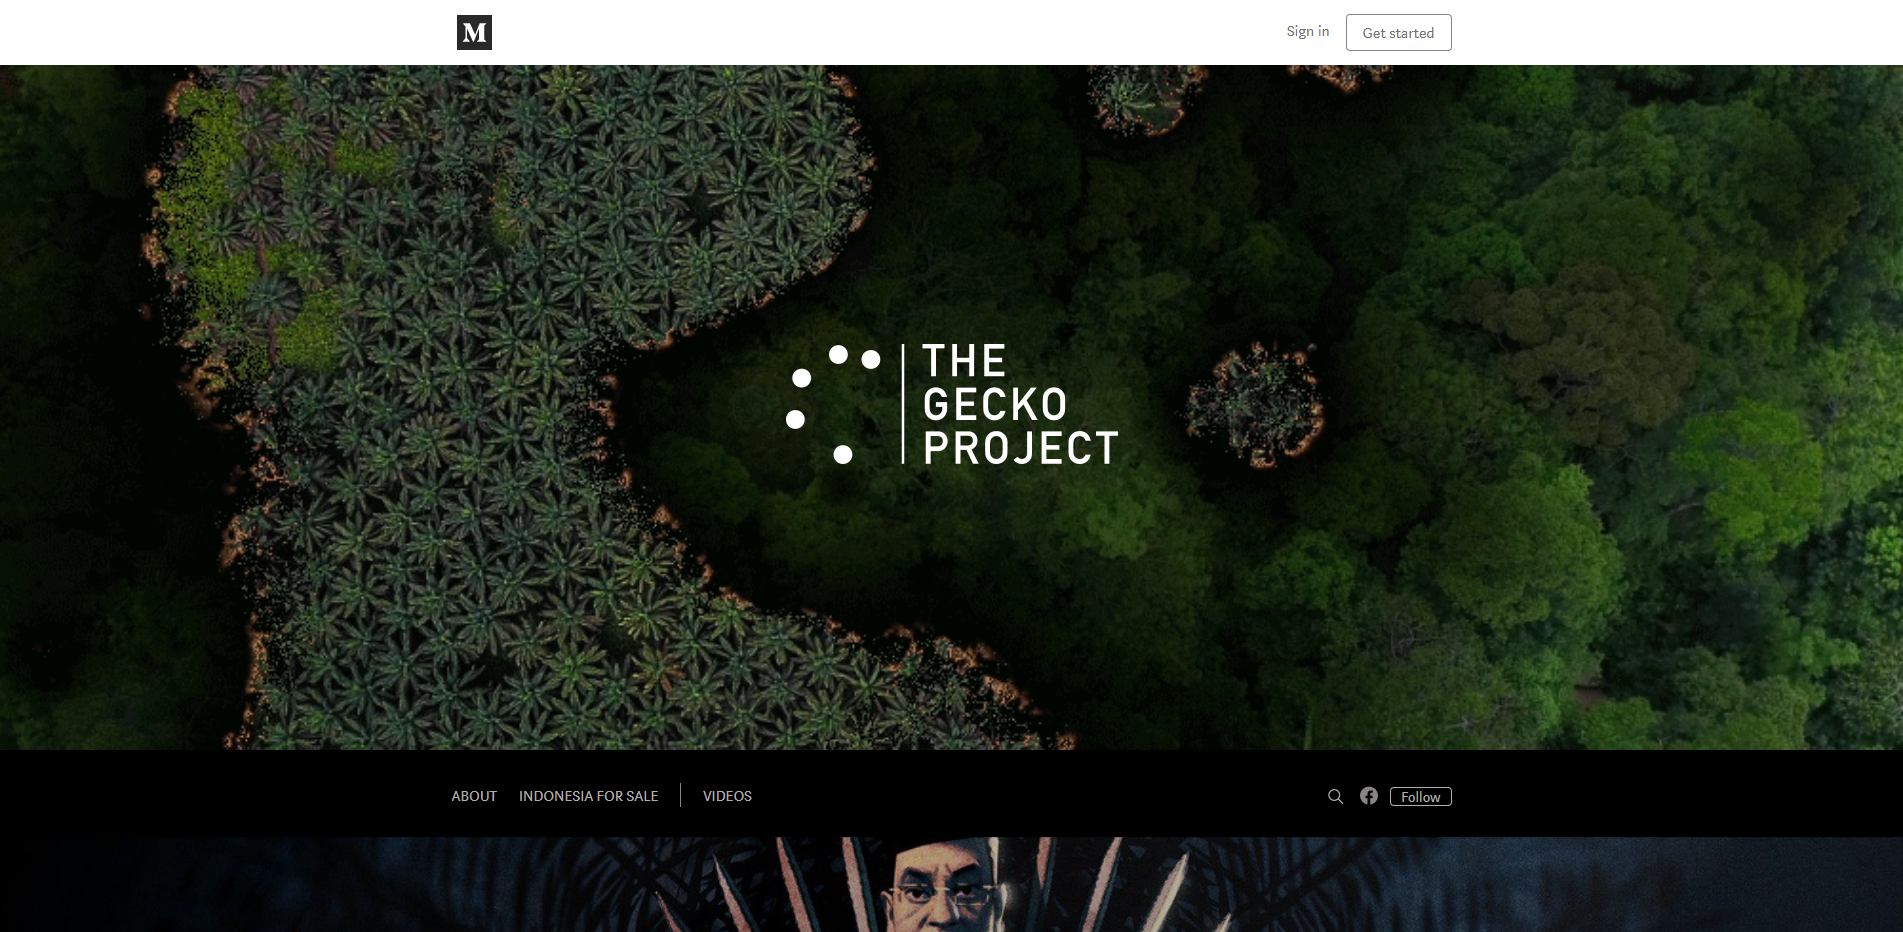 The Gecko Project website